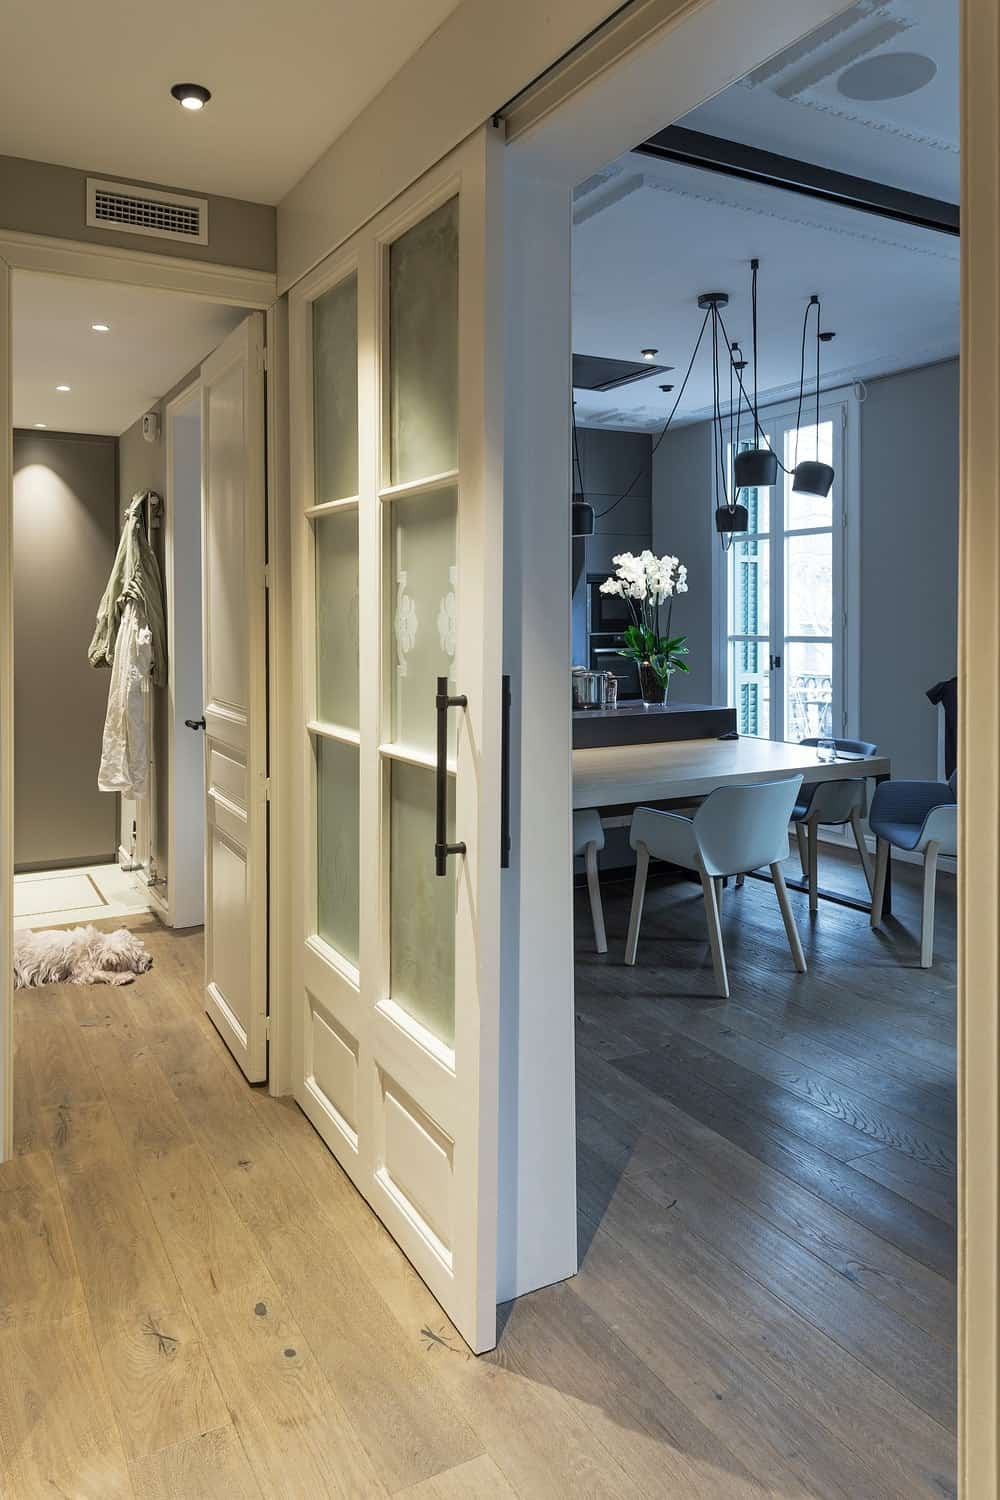 This is a view of the dining and kitchen from the hallway with a sliding French door that matches well with the ceiling.